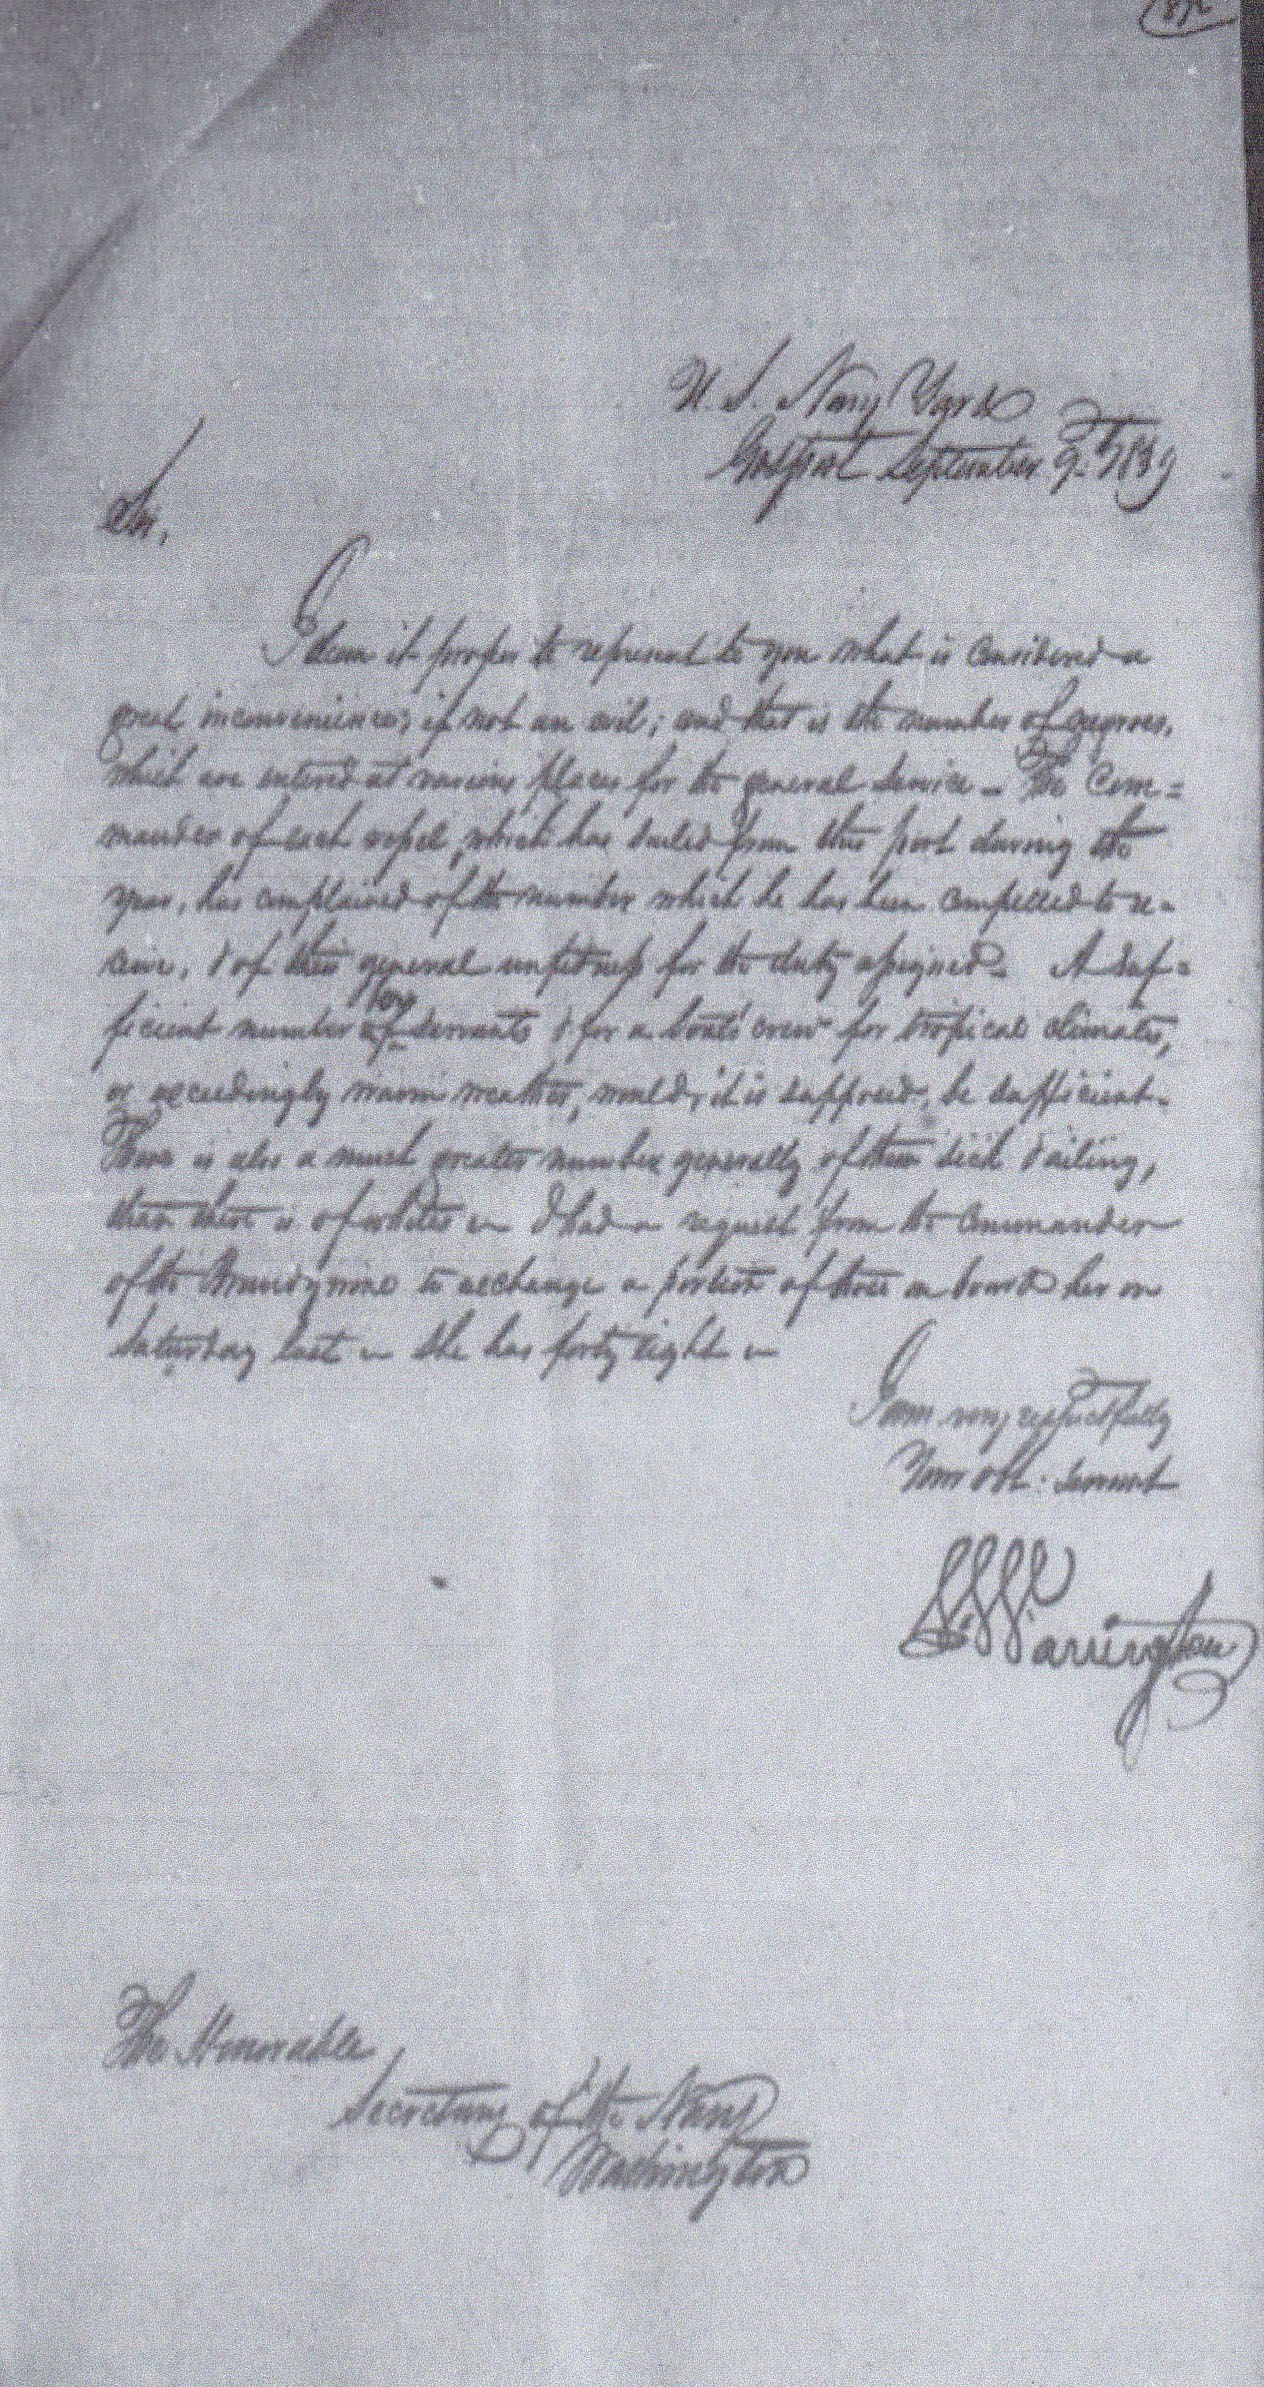 Cbp Marine Interdiction Agent Cover Letter The Recruitment Of African Americans In The Us Navy 1839